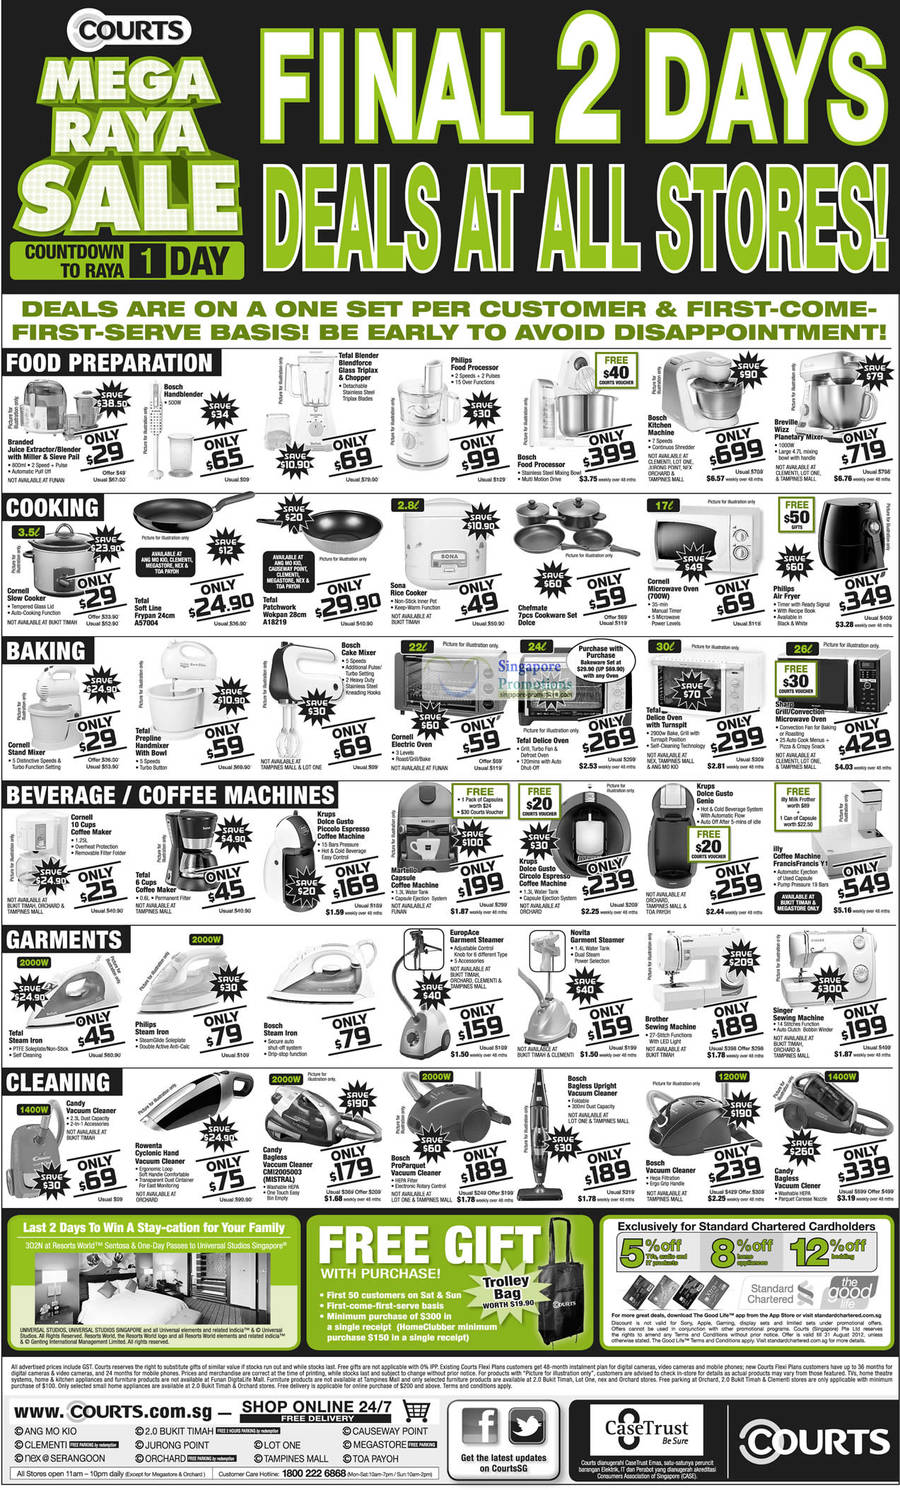 Tefal Soft Line Frypan A57004, Tefal Patchwork Wokpan A18219, Chefmate Cookware Set Dolce, Candy Vaccum Cleaner CMI2005003 MISTRAL